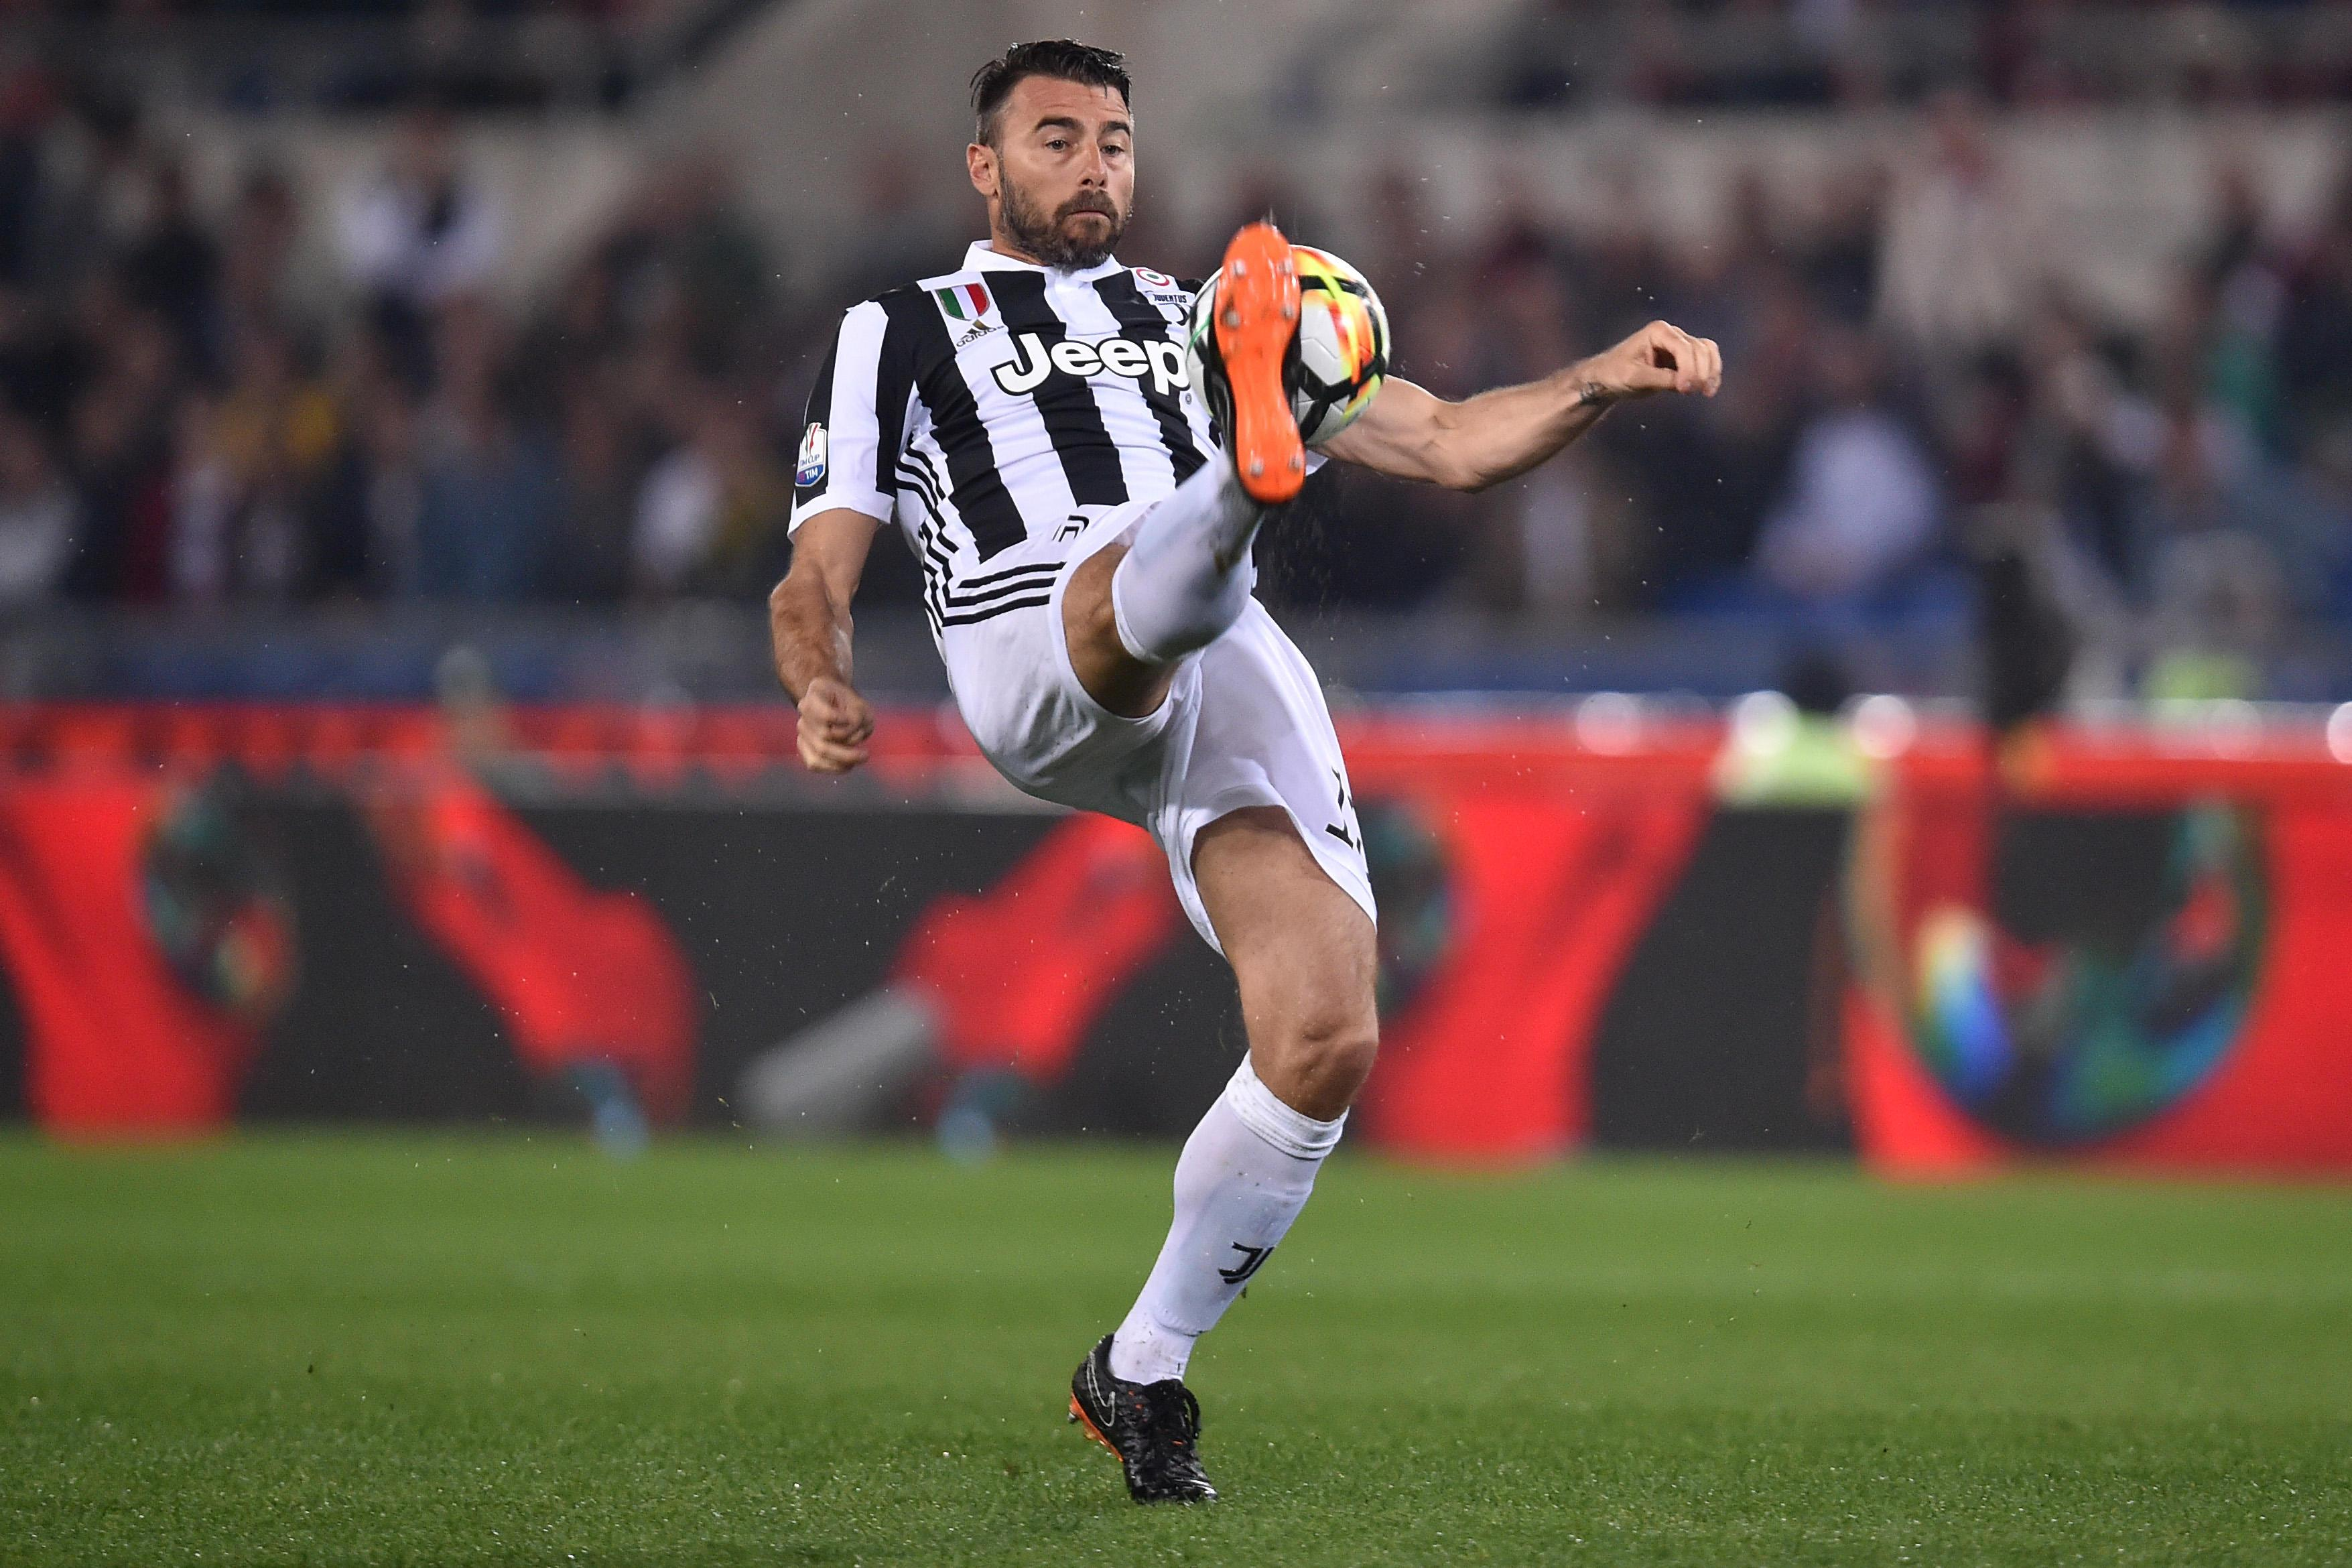 Barzagli left Wolfsburg to sign for Juventus in 2011